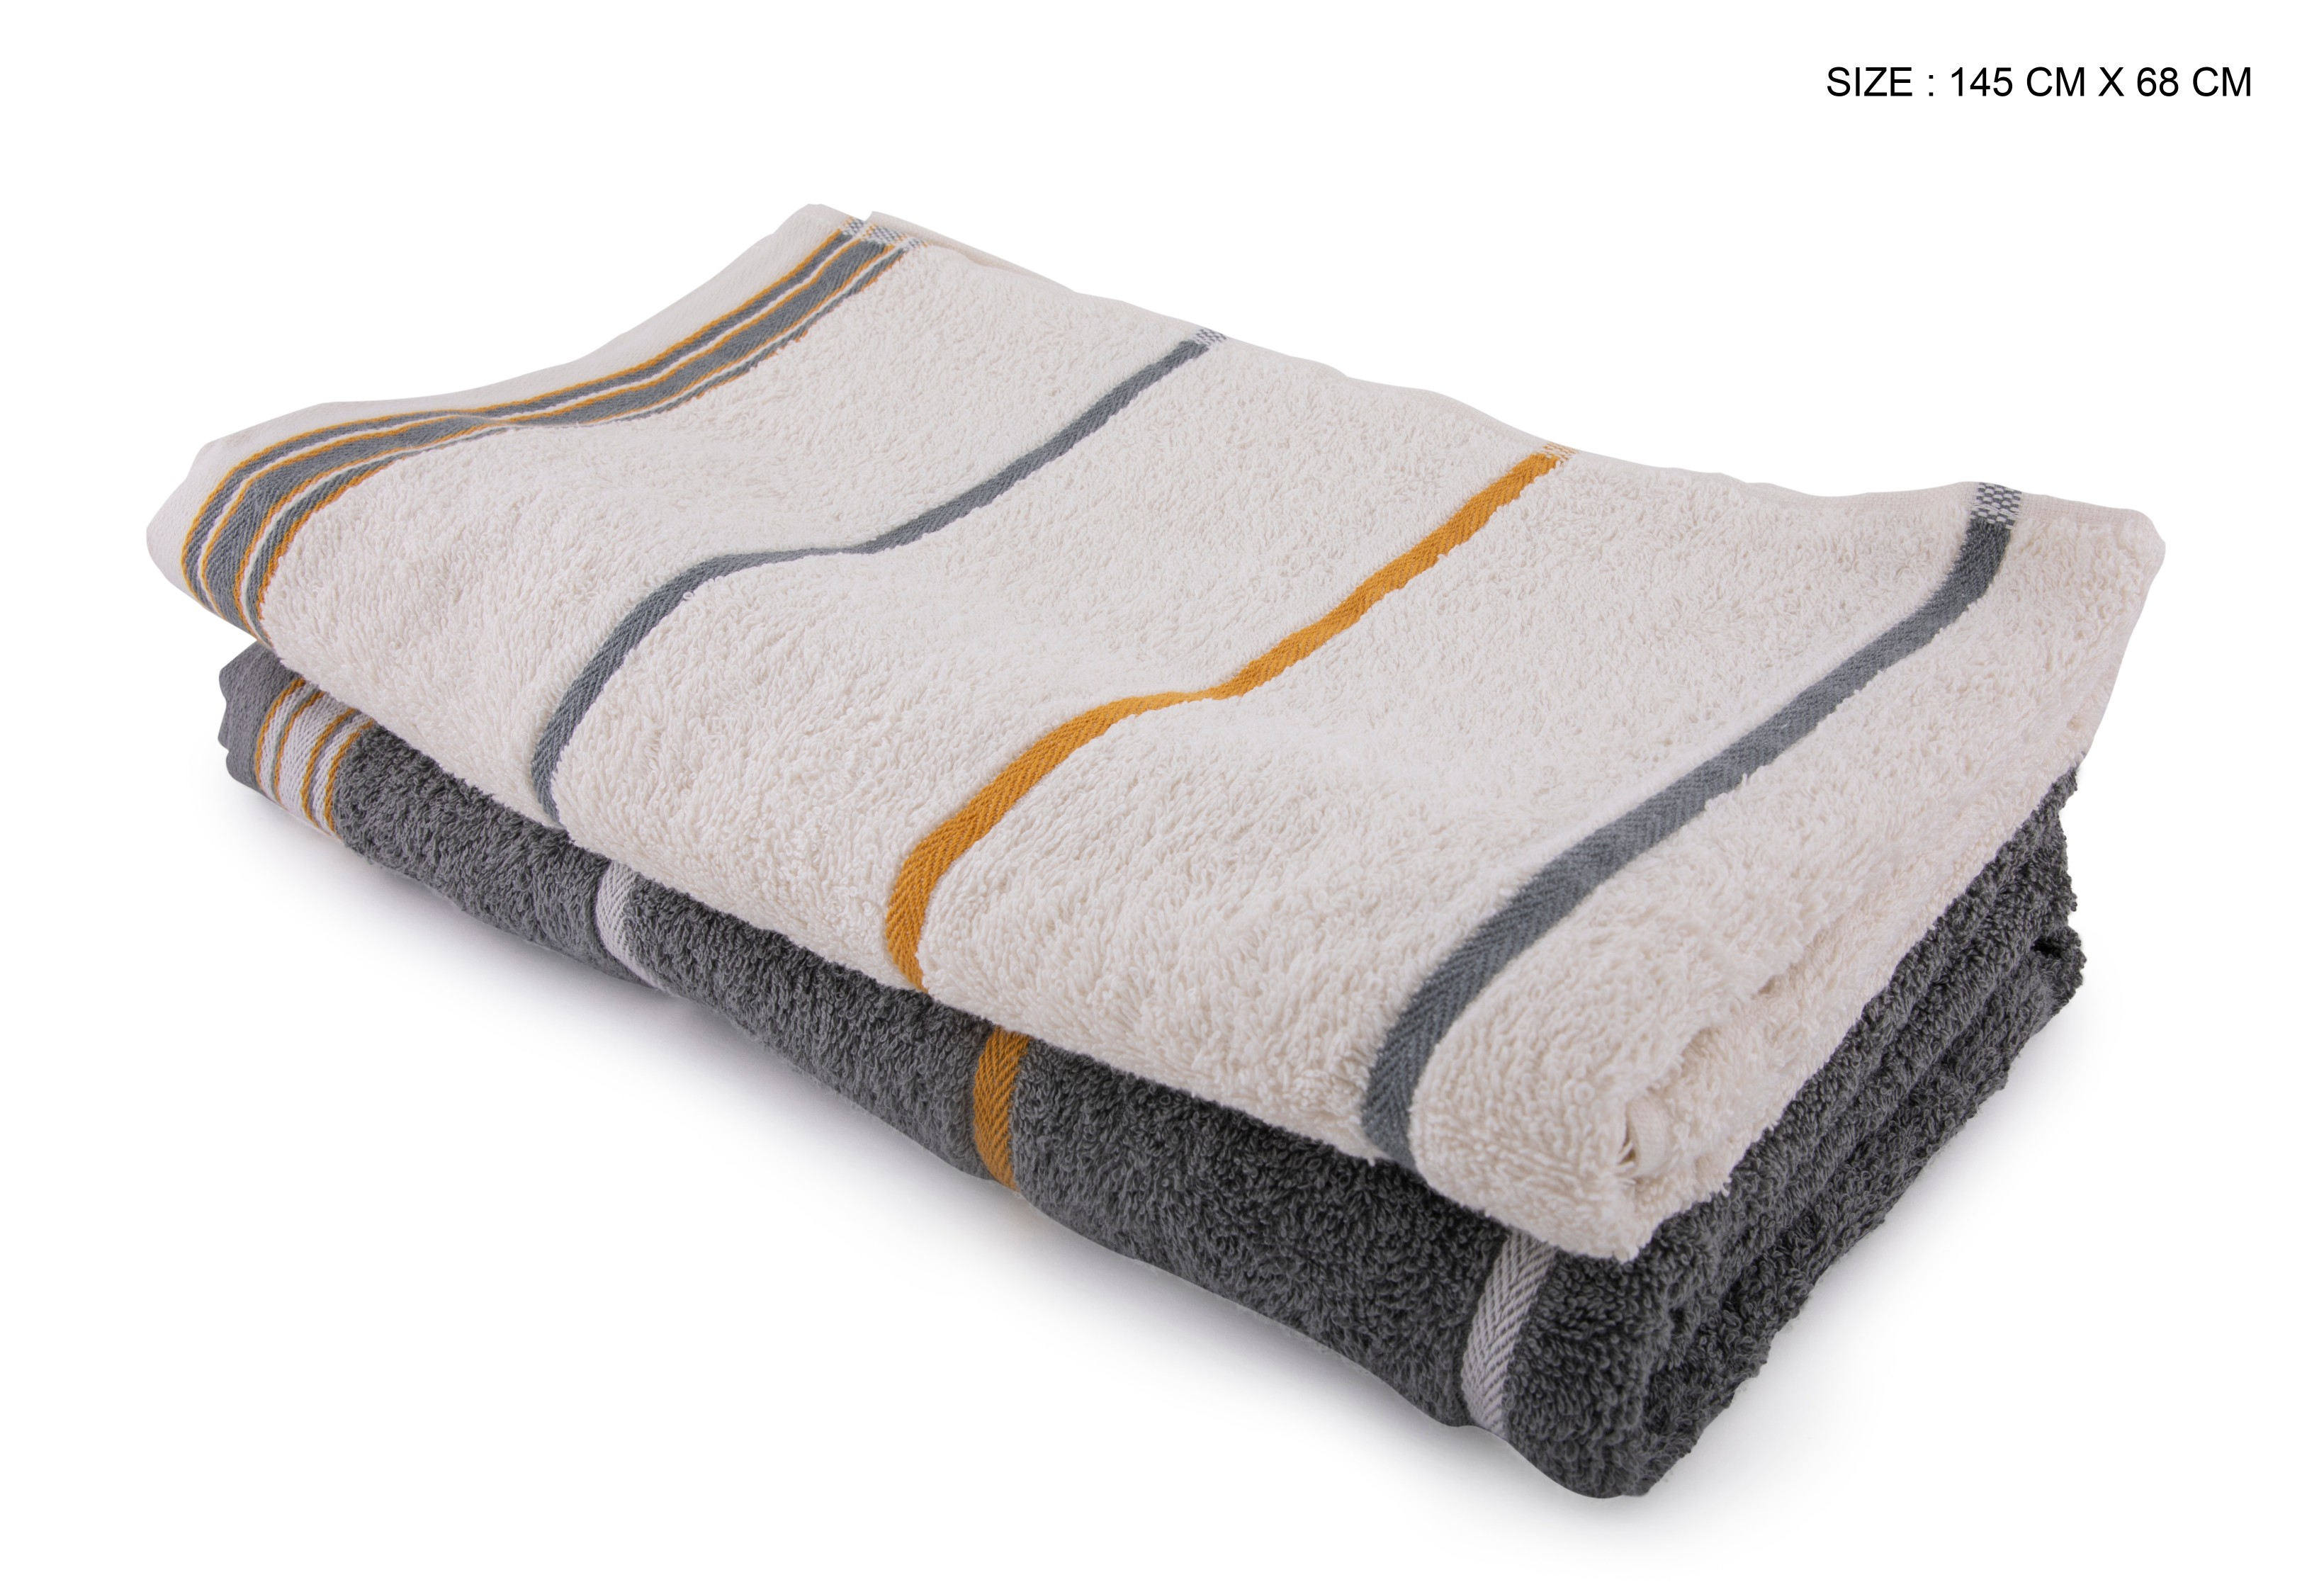 Living Essence Emilia Off White Grey Set Of 2 Terry Towels Cotton Towel Sets in Off White Grey Colour by HomeTown